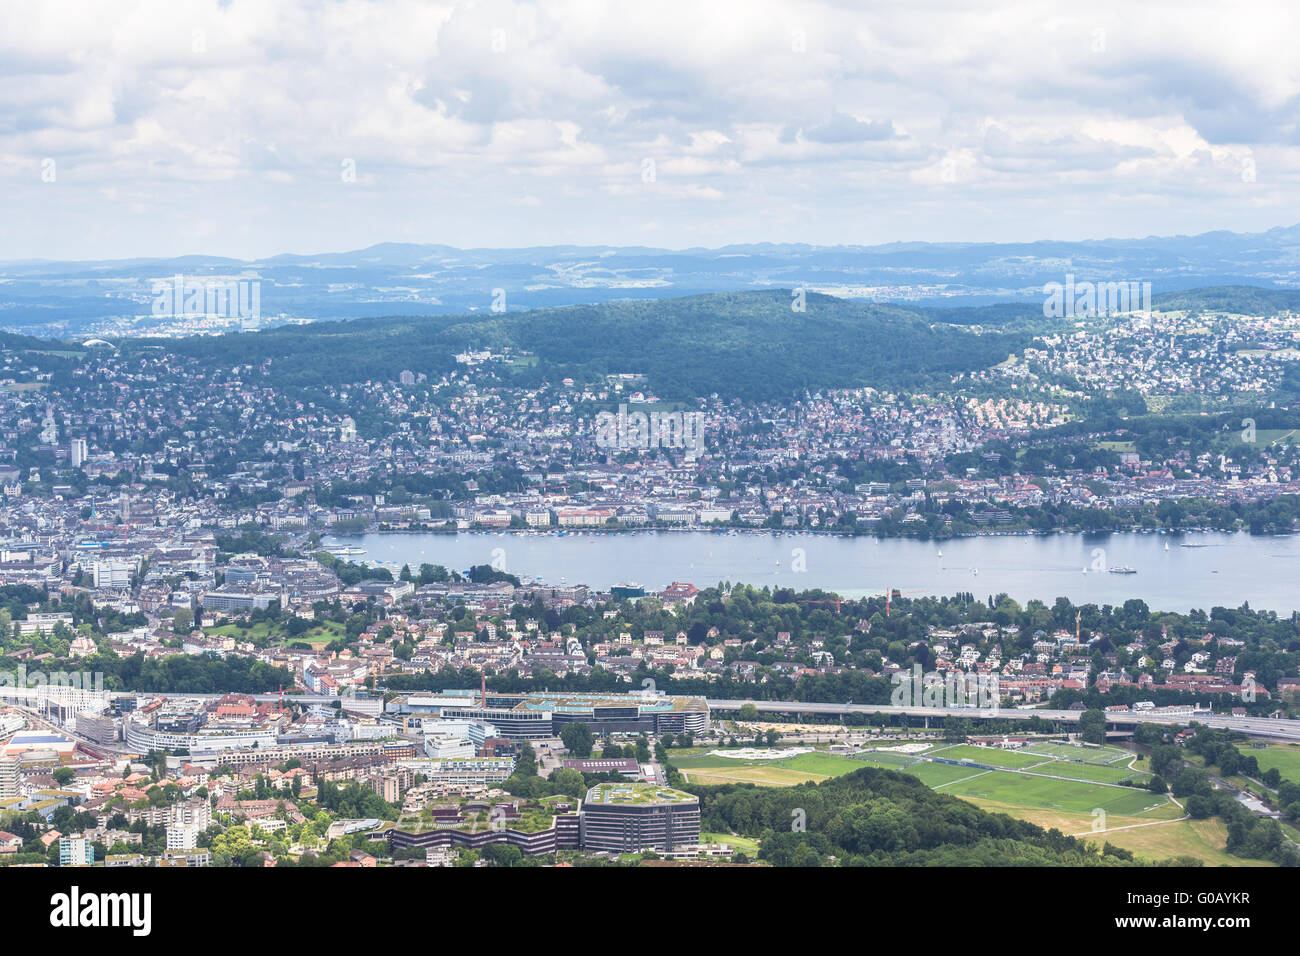 Panorama view of Zurich city and lake on  top of Uetliberg, Zurich, Switzerland - Stock Image